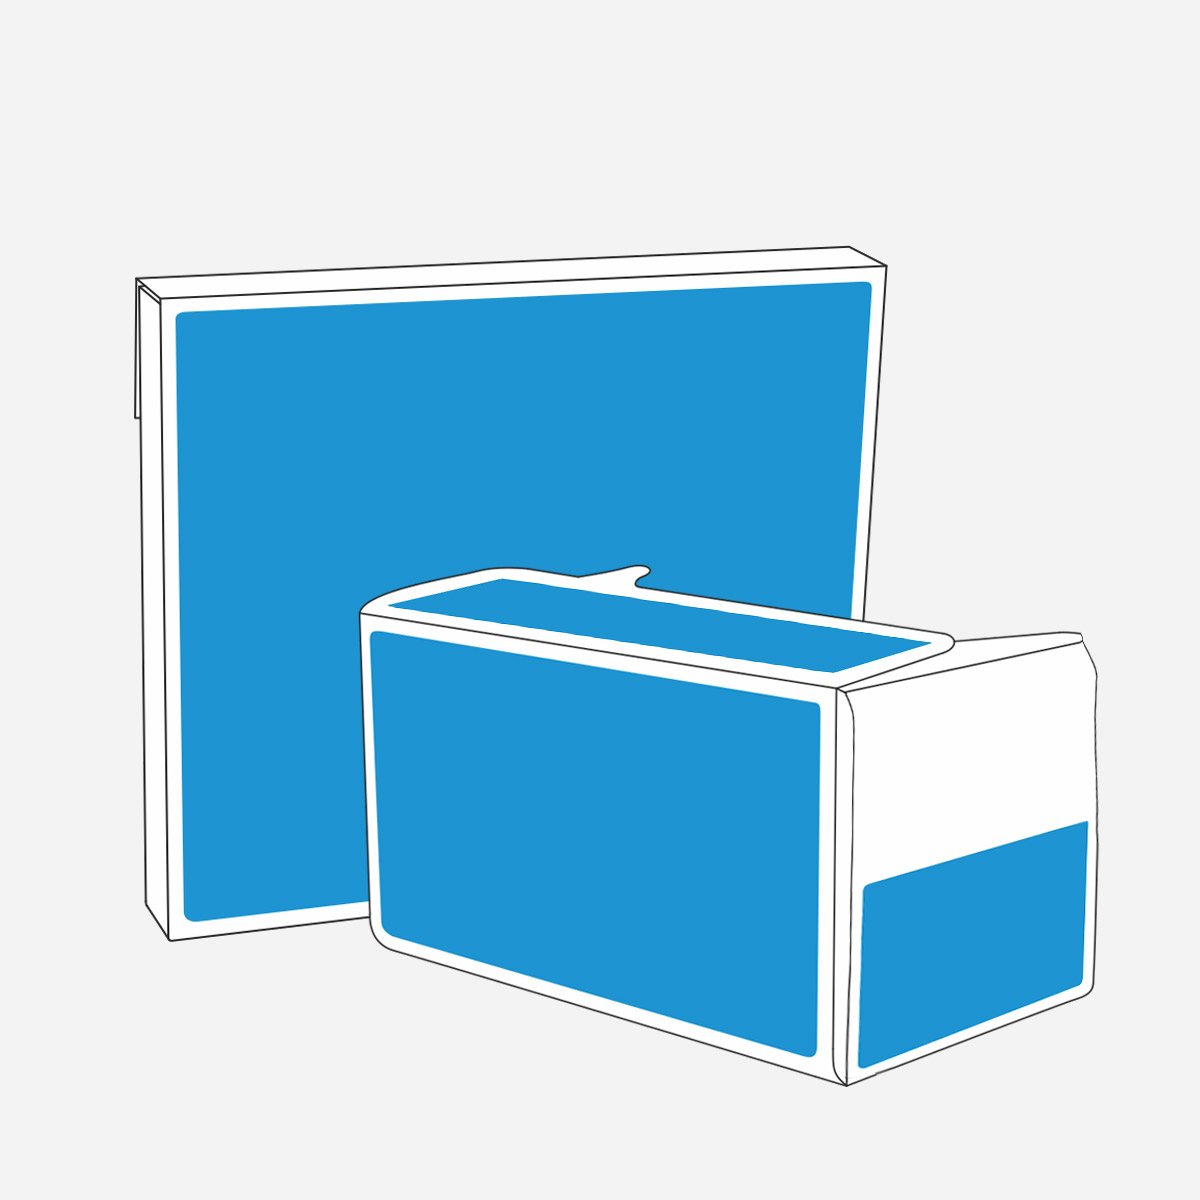 cardboard-neutral-box-with-stickers-04-sample.jpg